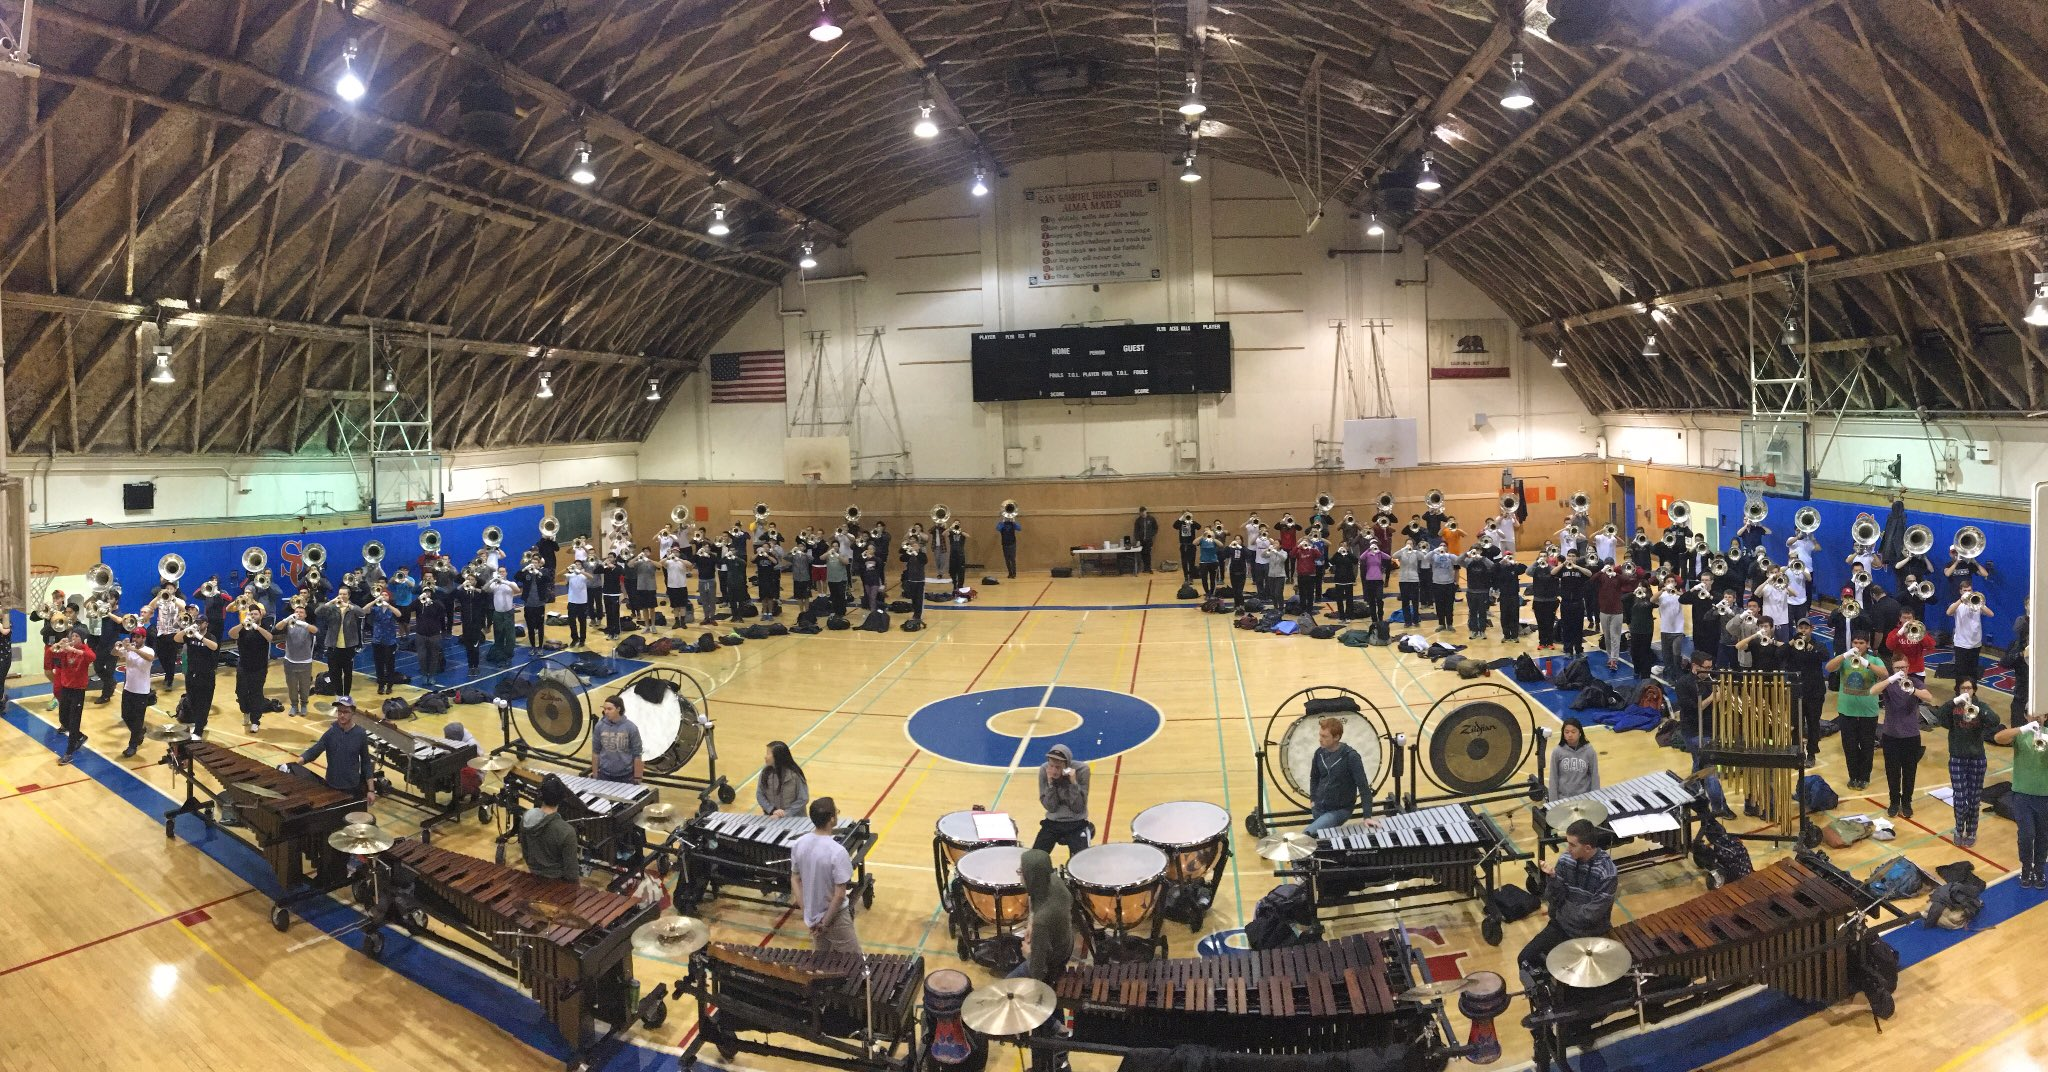 Hey everybody, @scvanguard here taking over to show you some behind the scenes prep for our 2017 Rose Parade appearance! #SCVRoses https://t.co/tiifWMB37a